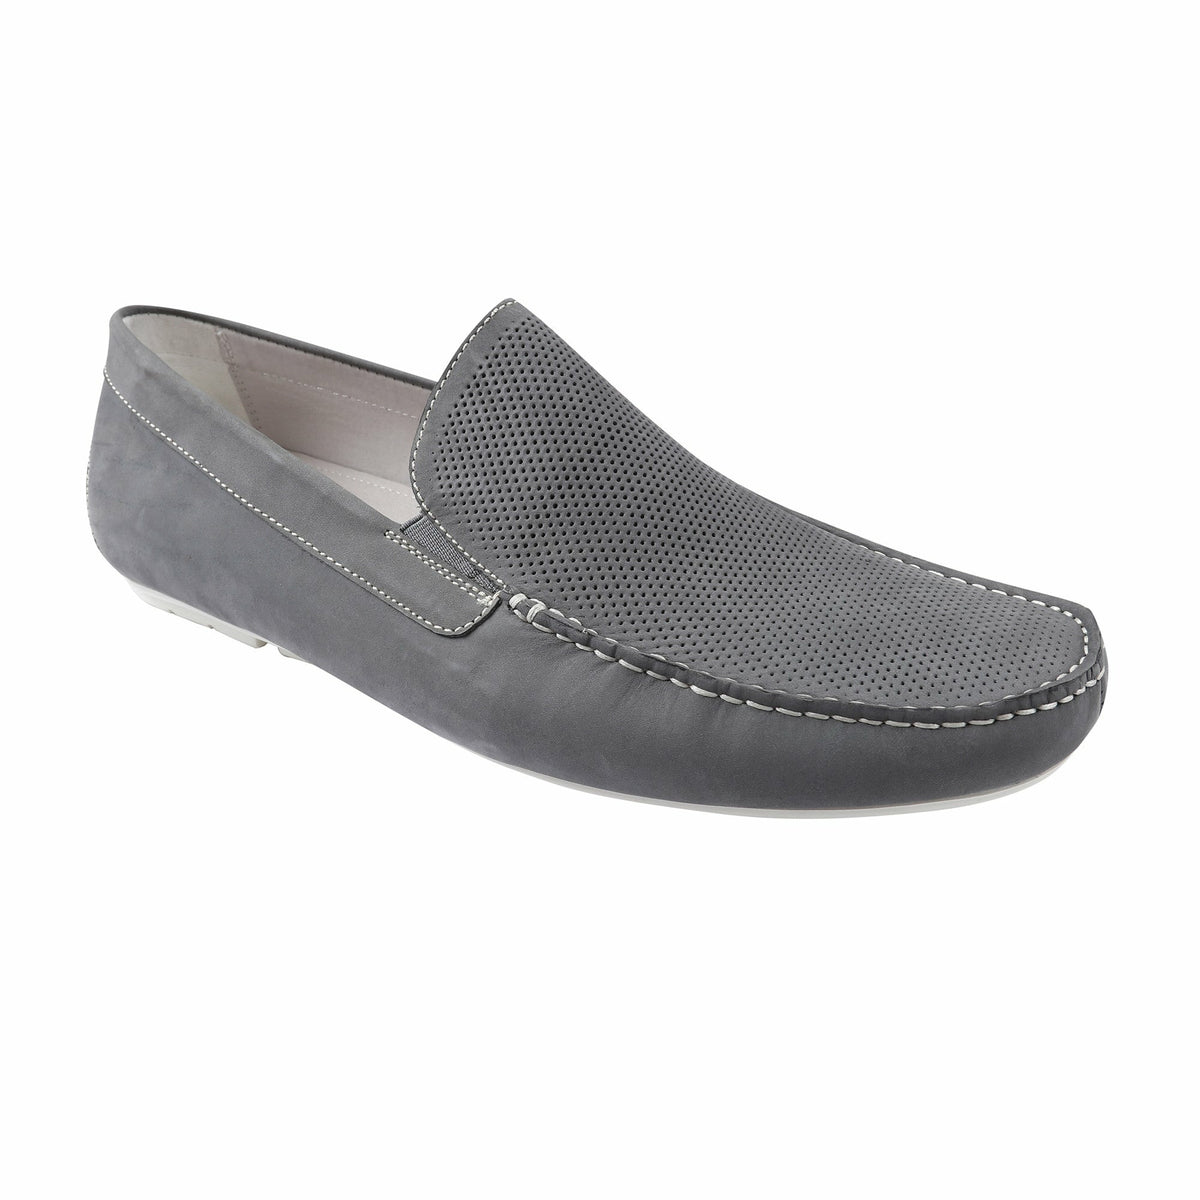 Florsheim 'Crest' Moccasin Shoe in Blue